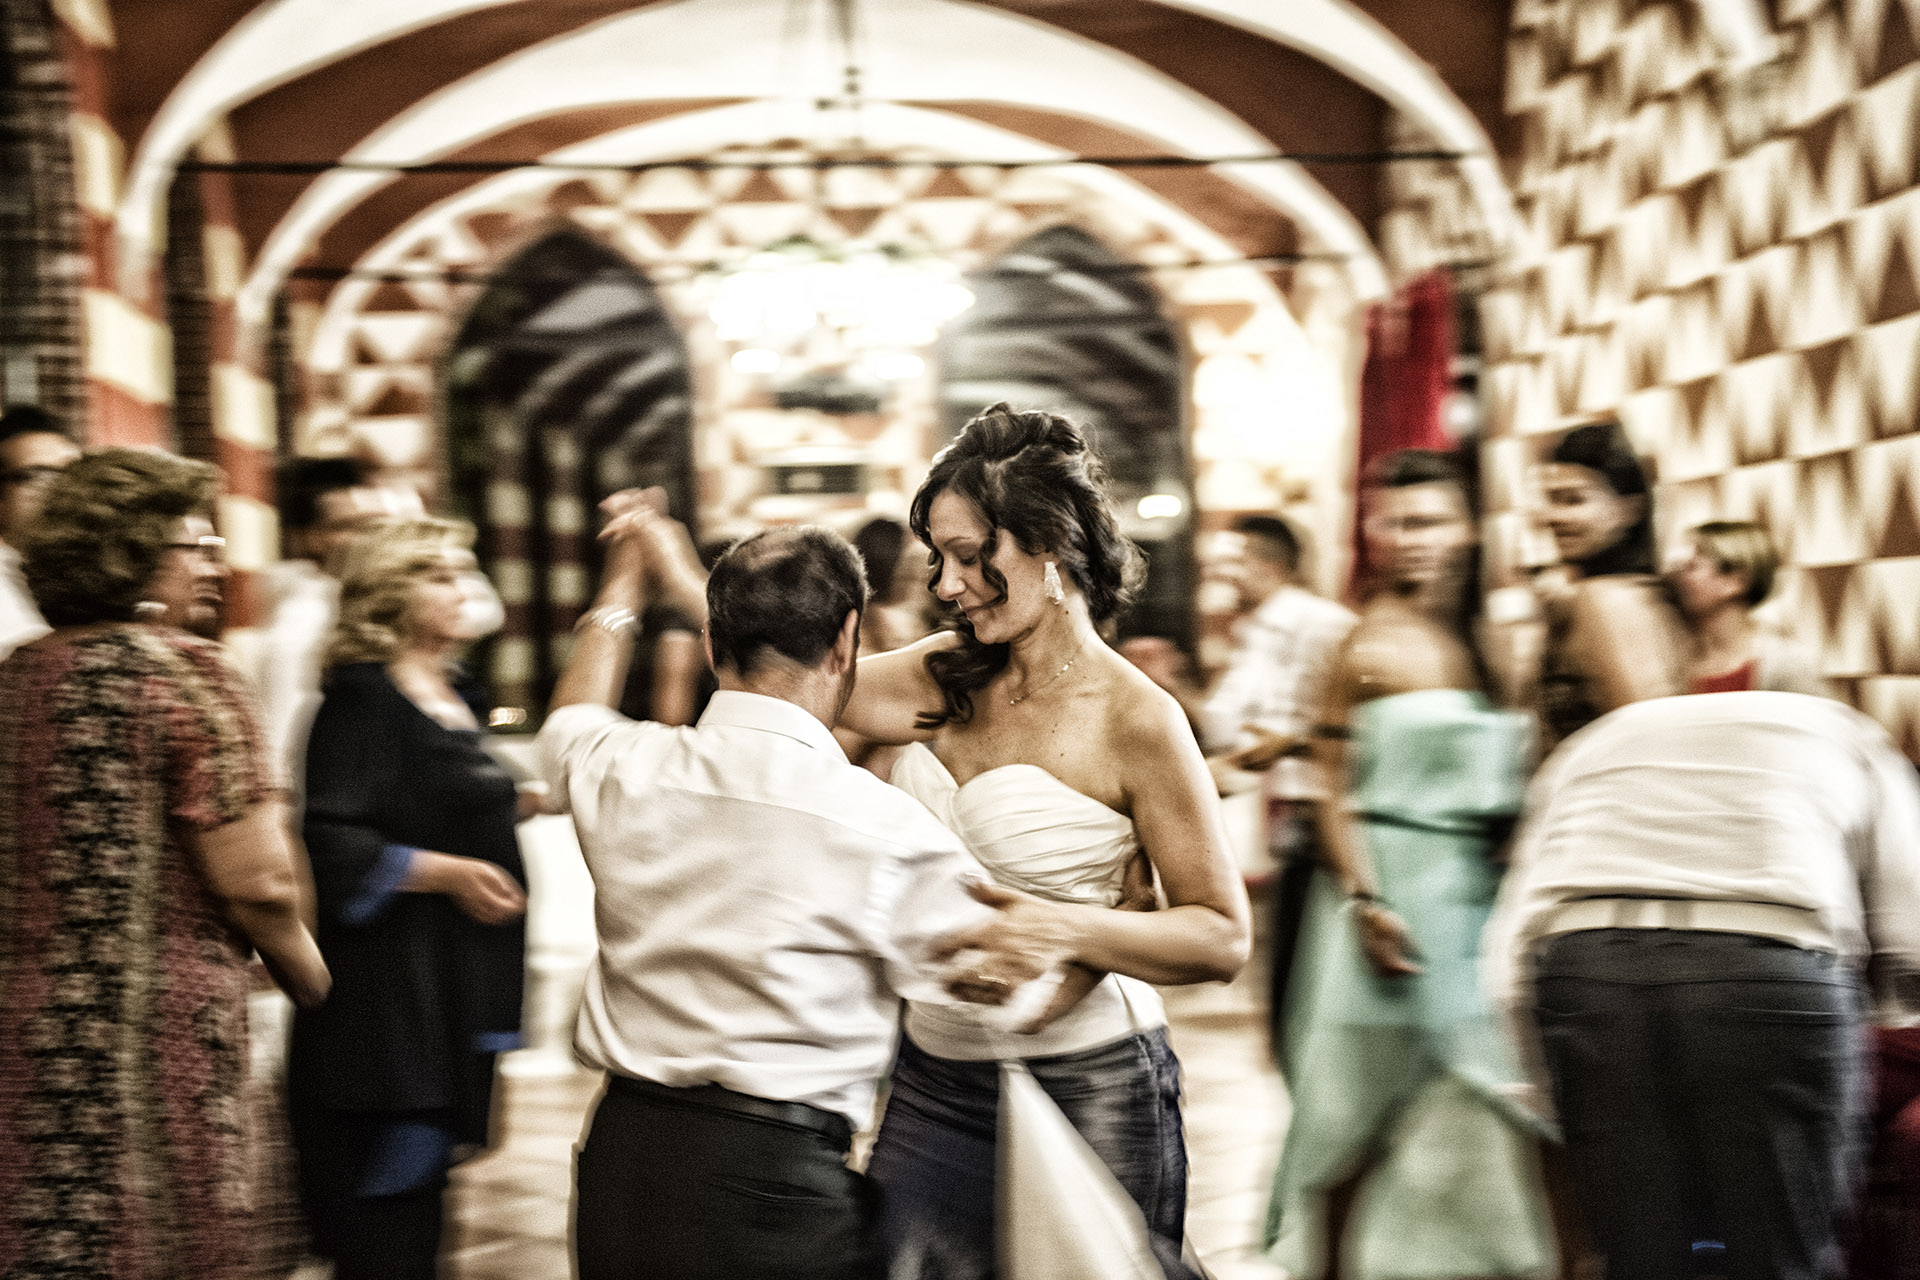 Wedding photographer in venice, rome, turin, florence for international exclusive vip wedding